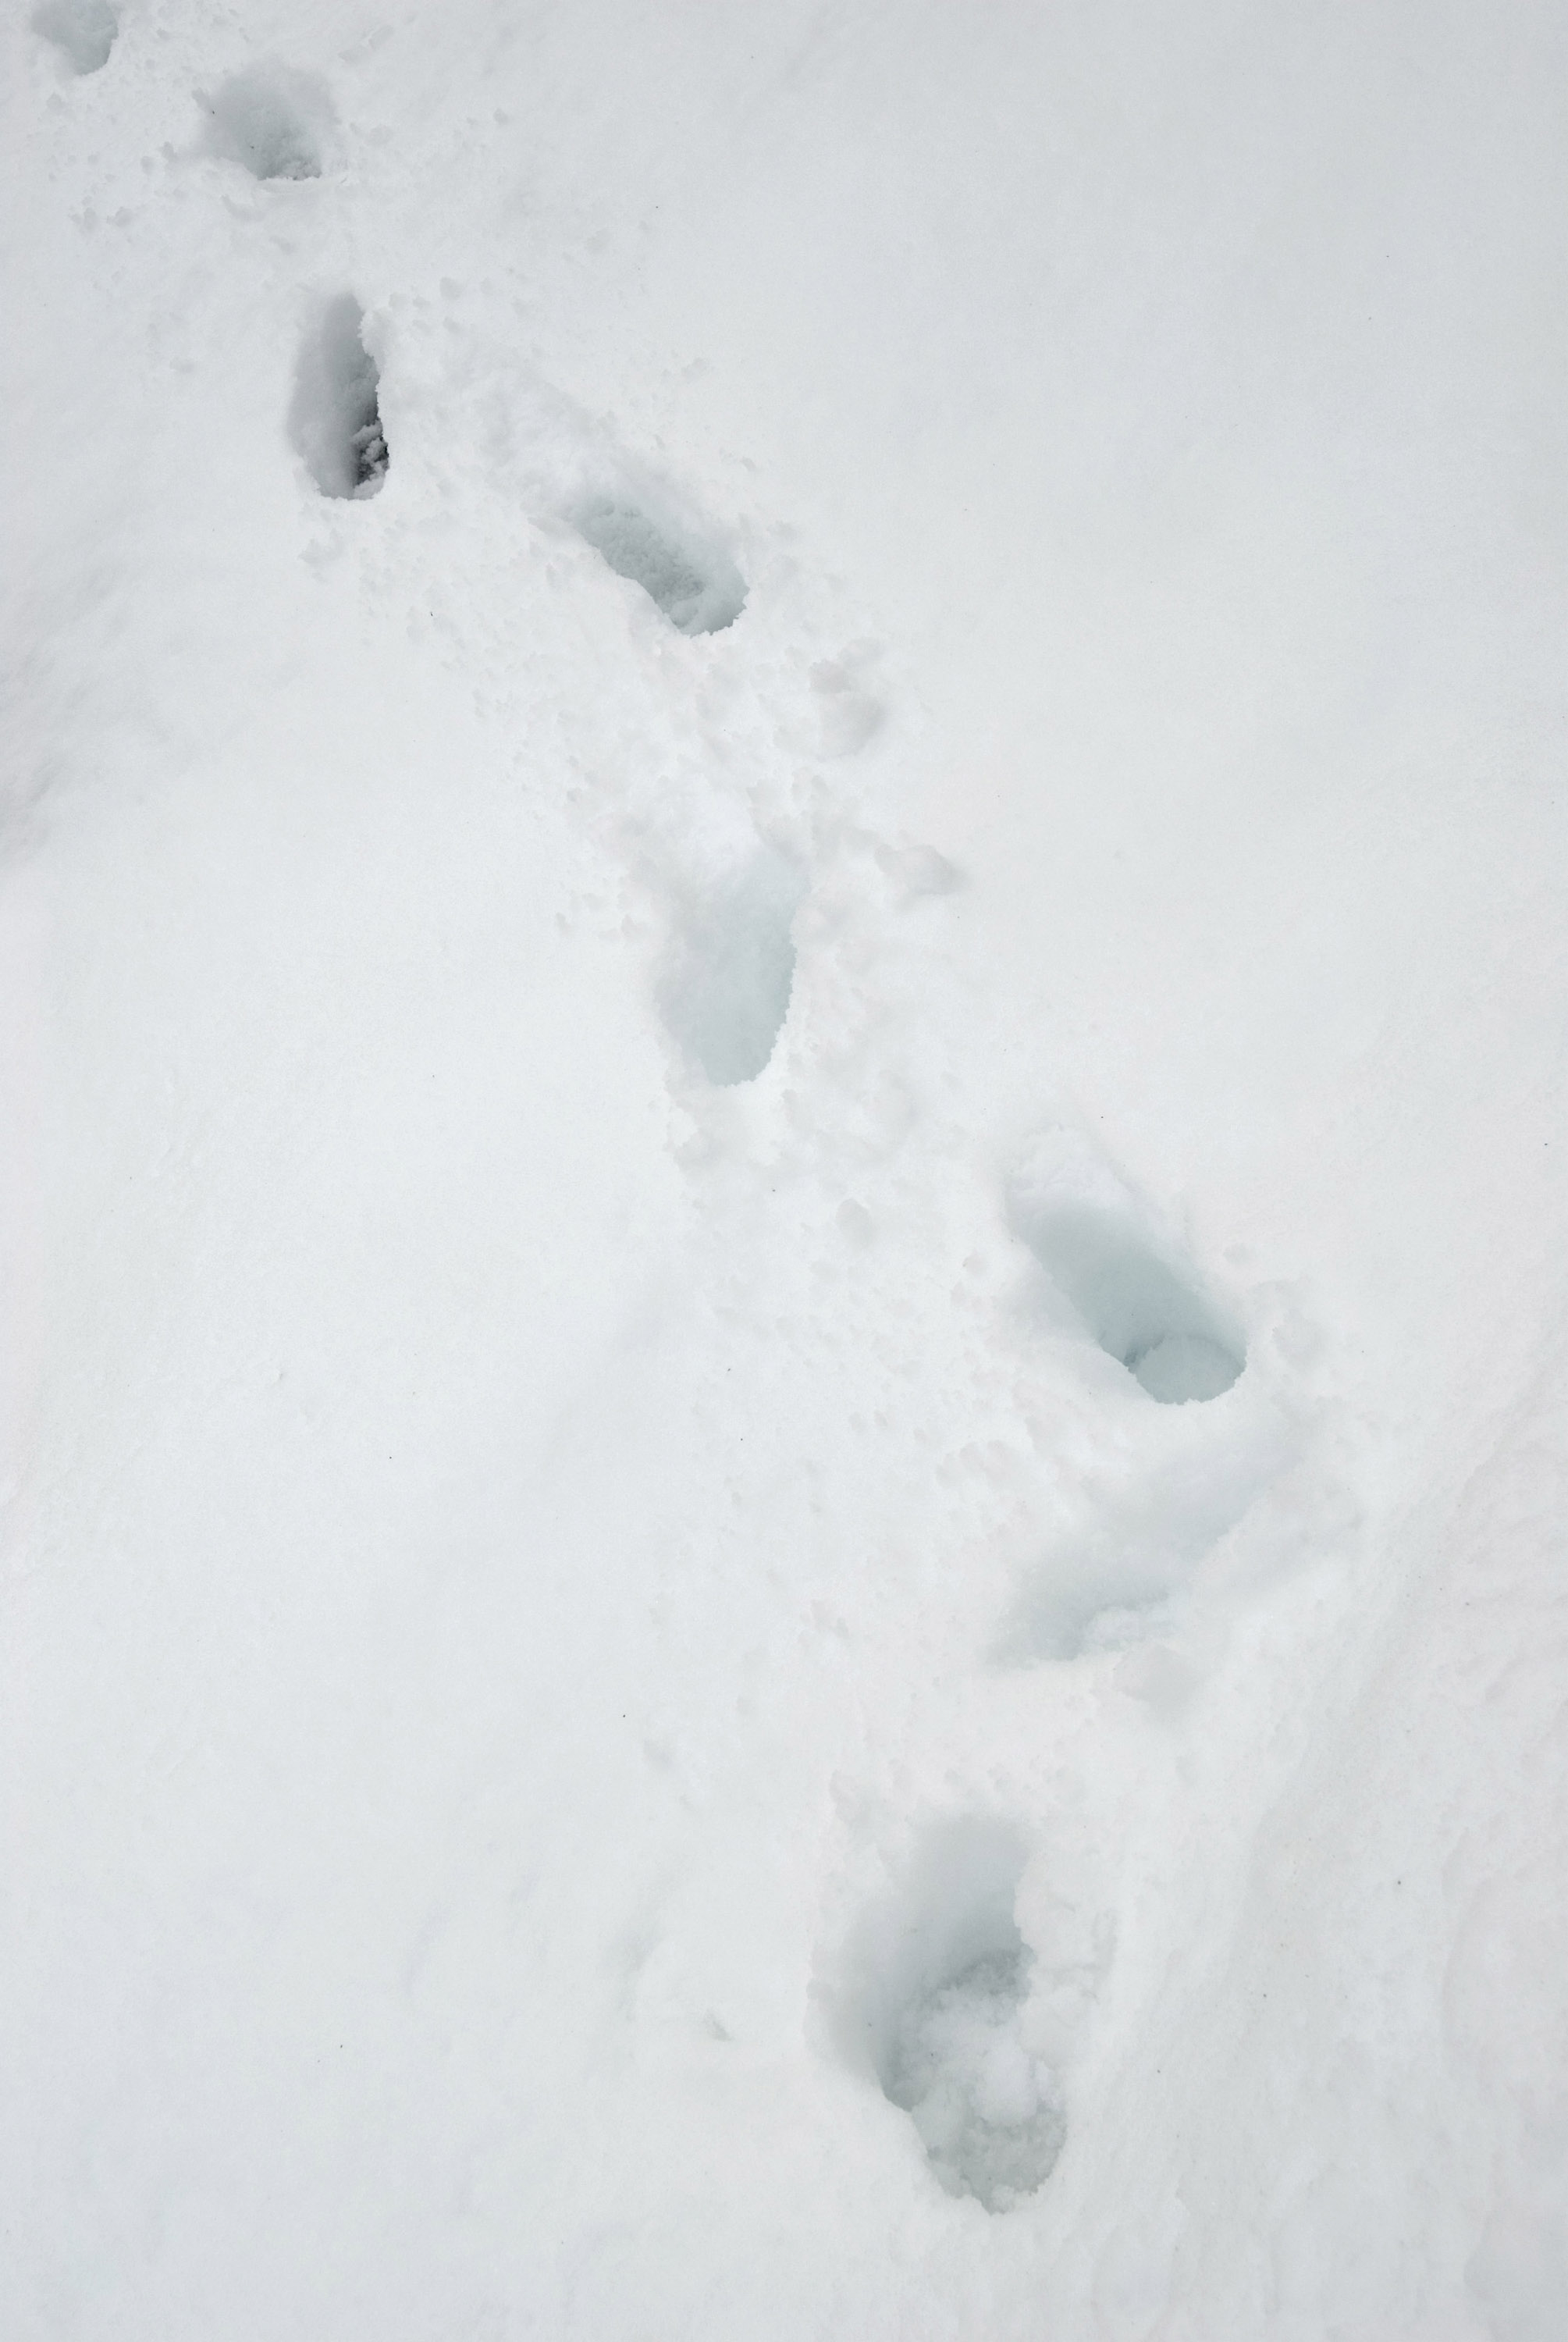 a line of foot prints makng their way through deep fresh snow